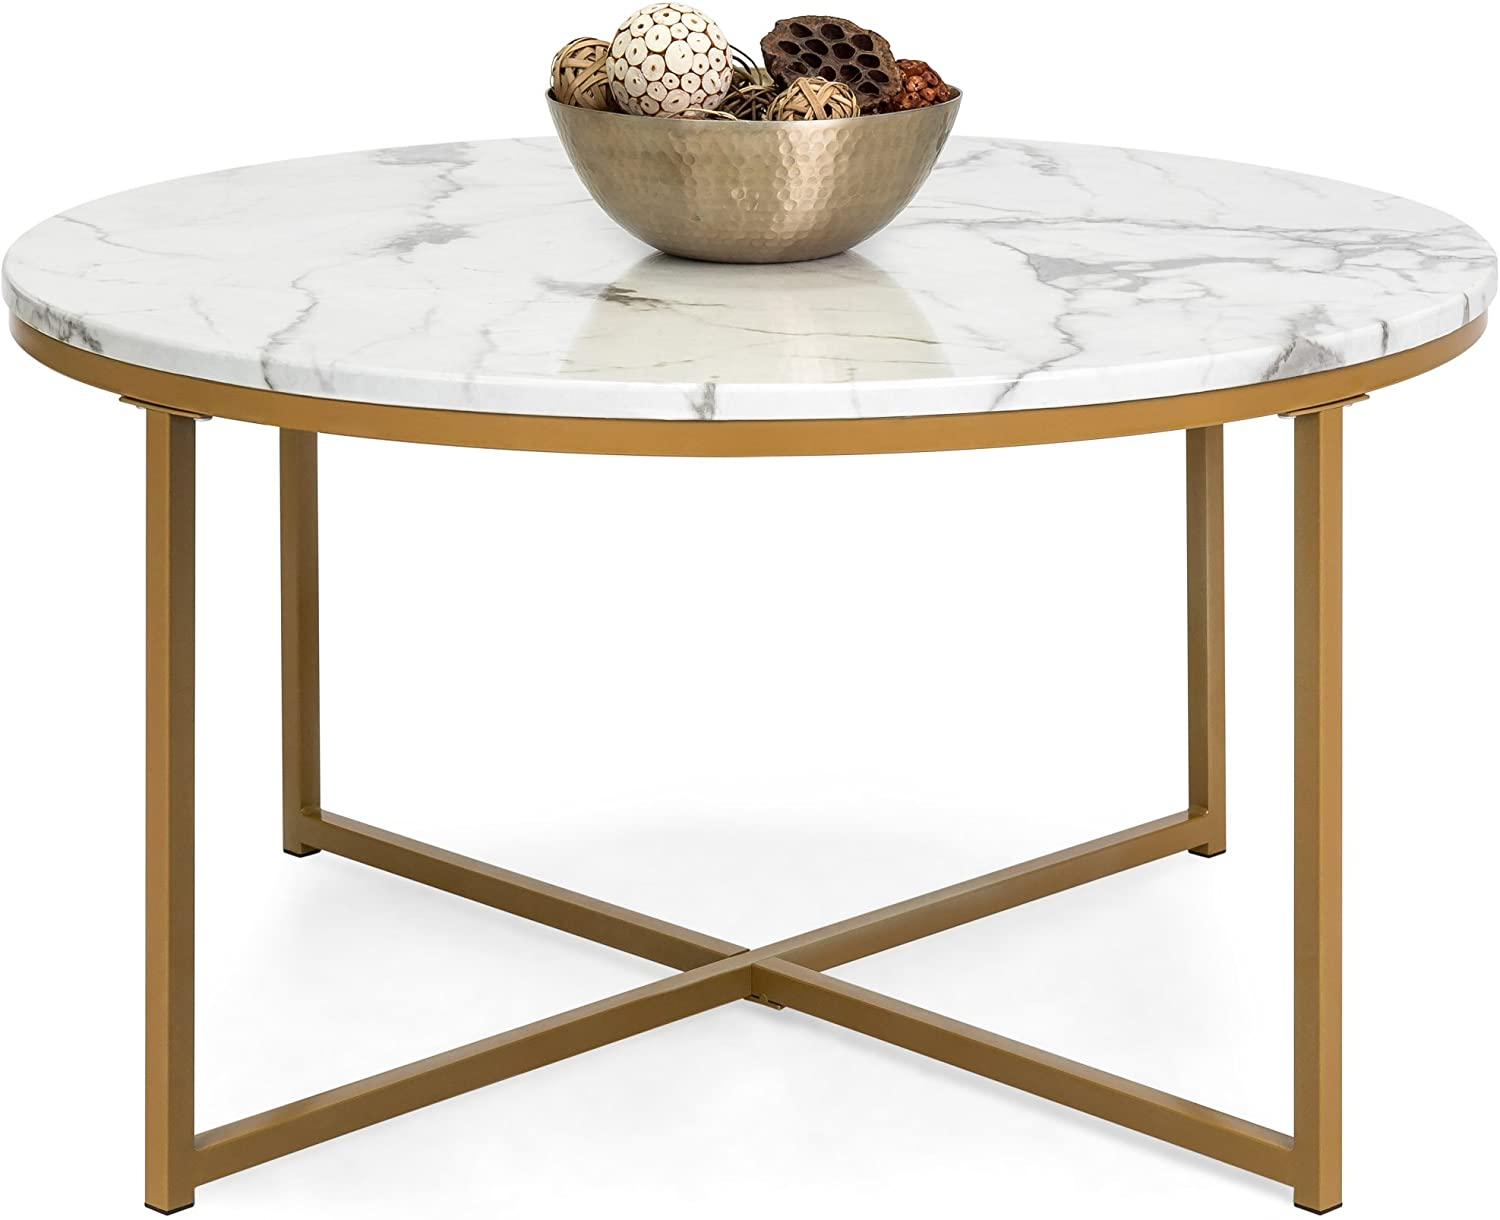 3 pc bar height bistro table set